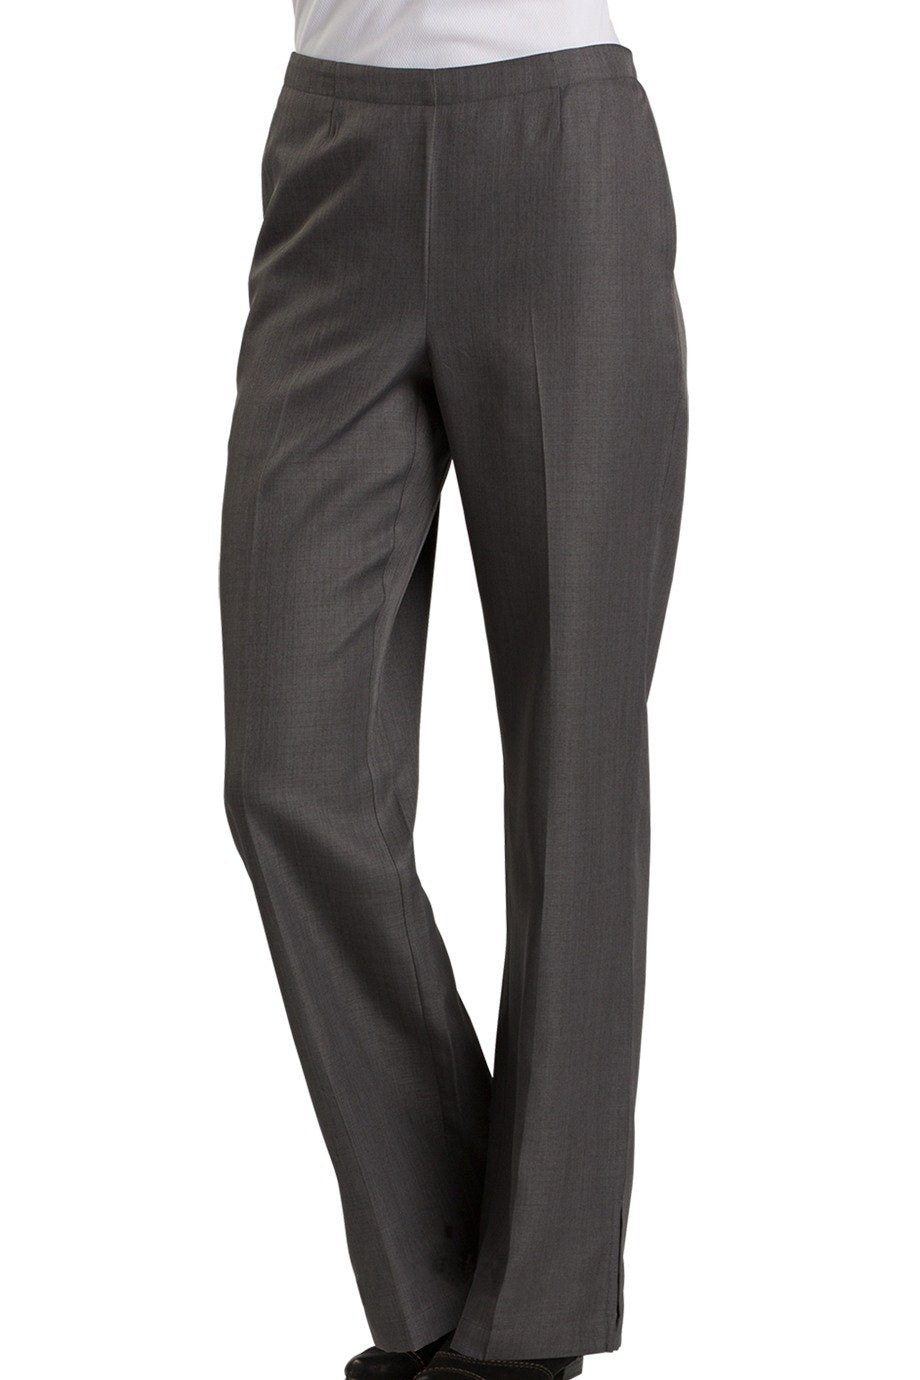 Graphite Premier Women's Pull-on Pant